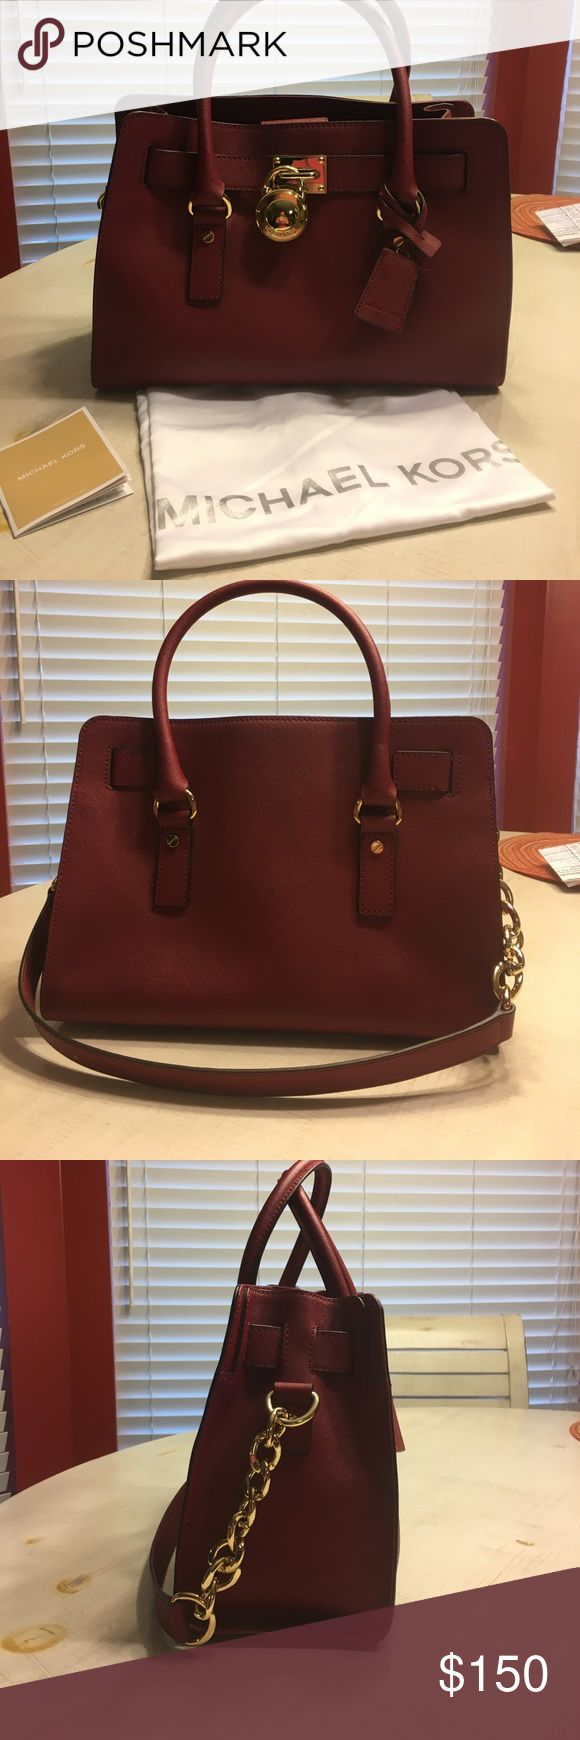 Red Michael Kors purse Michael Kors Hamilton Saffiano Leather Ew East West Satchel Chili Gold. Gently used. Can be used as a satchel or shoulder bag. Michael Kors Bags Shoulder Bags